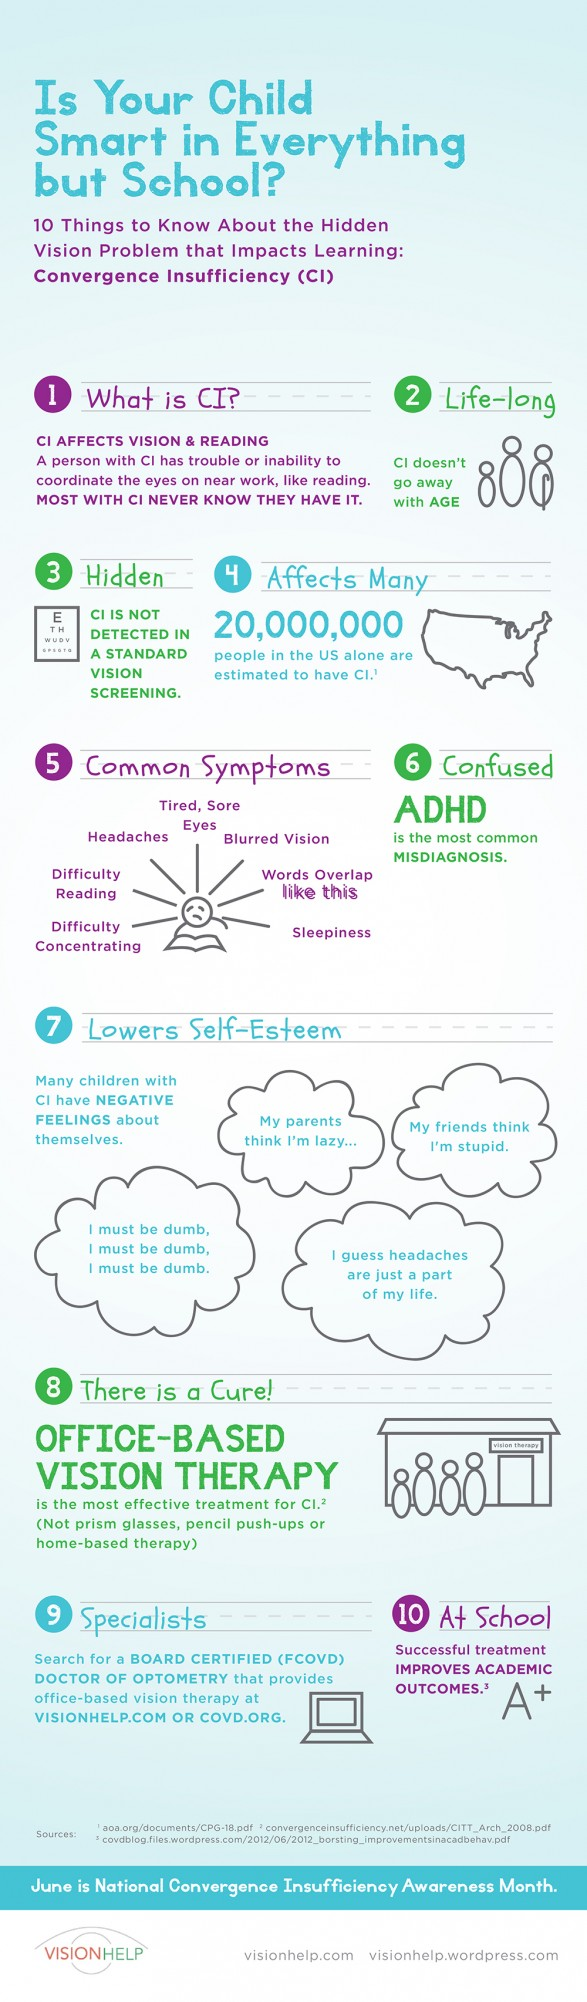 adhd impact on learning